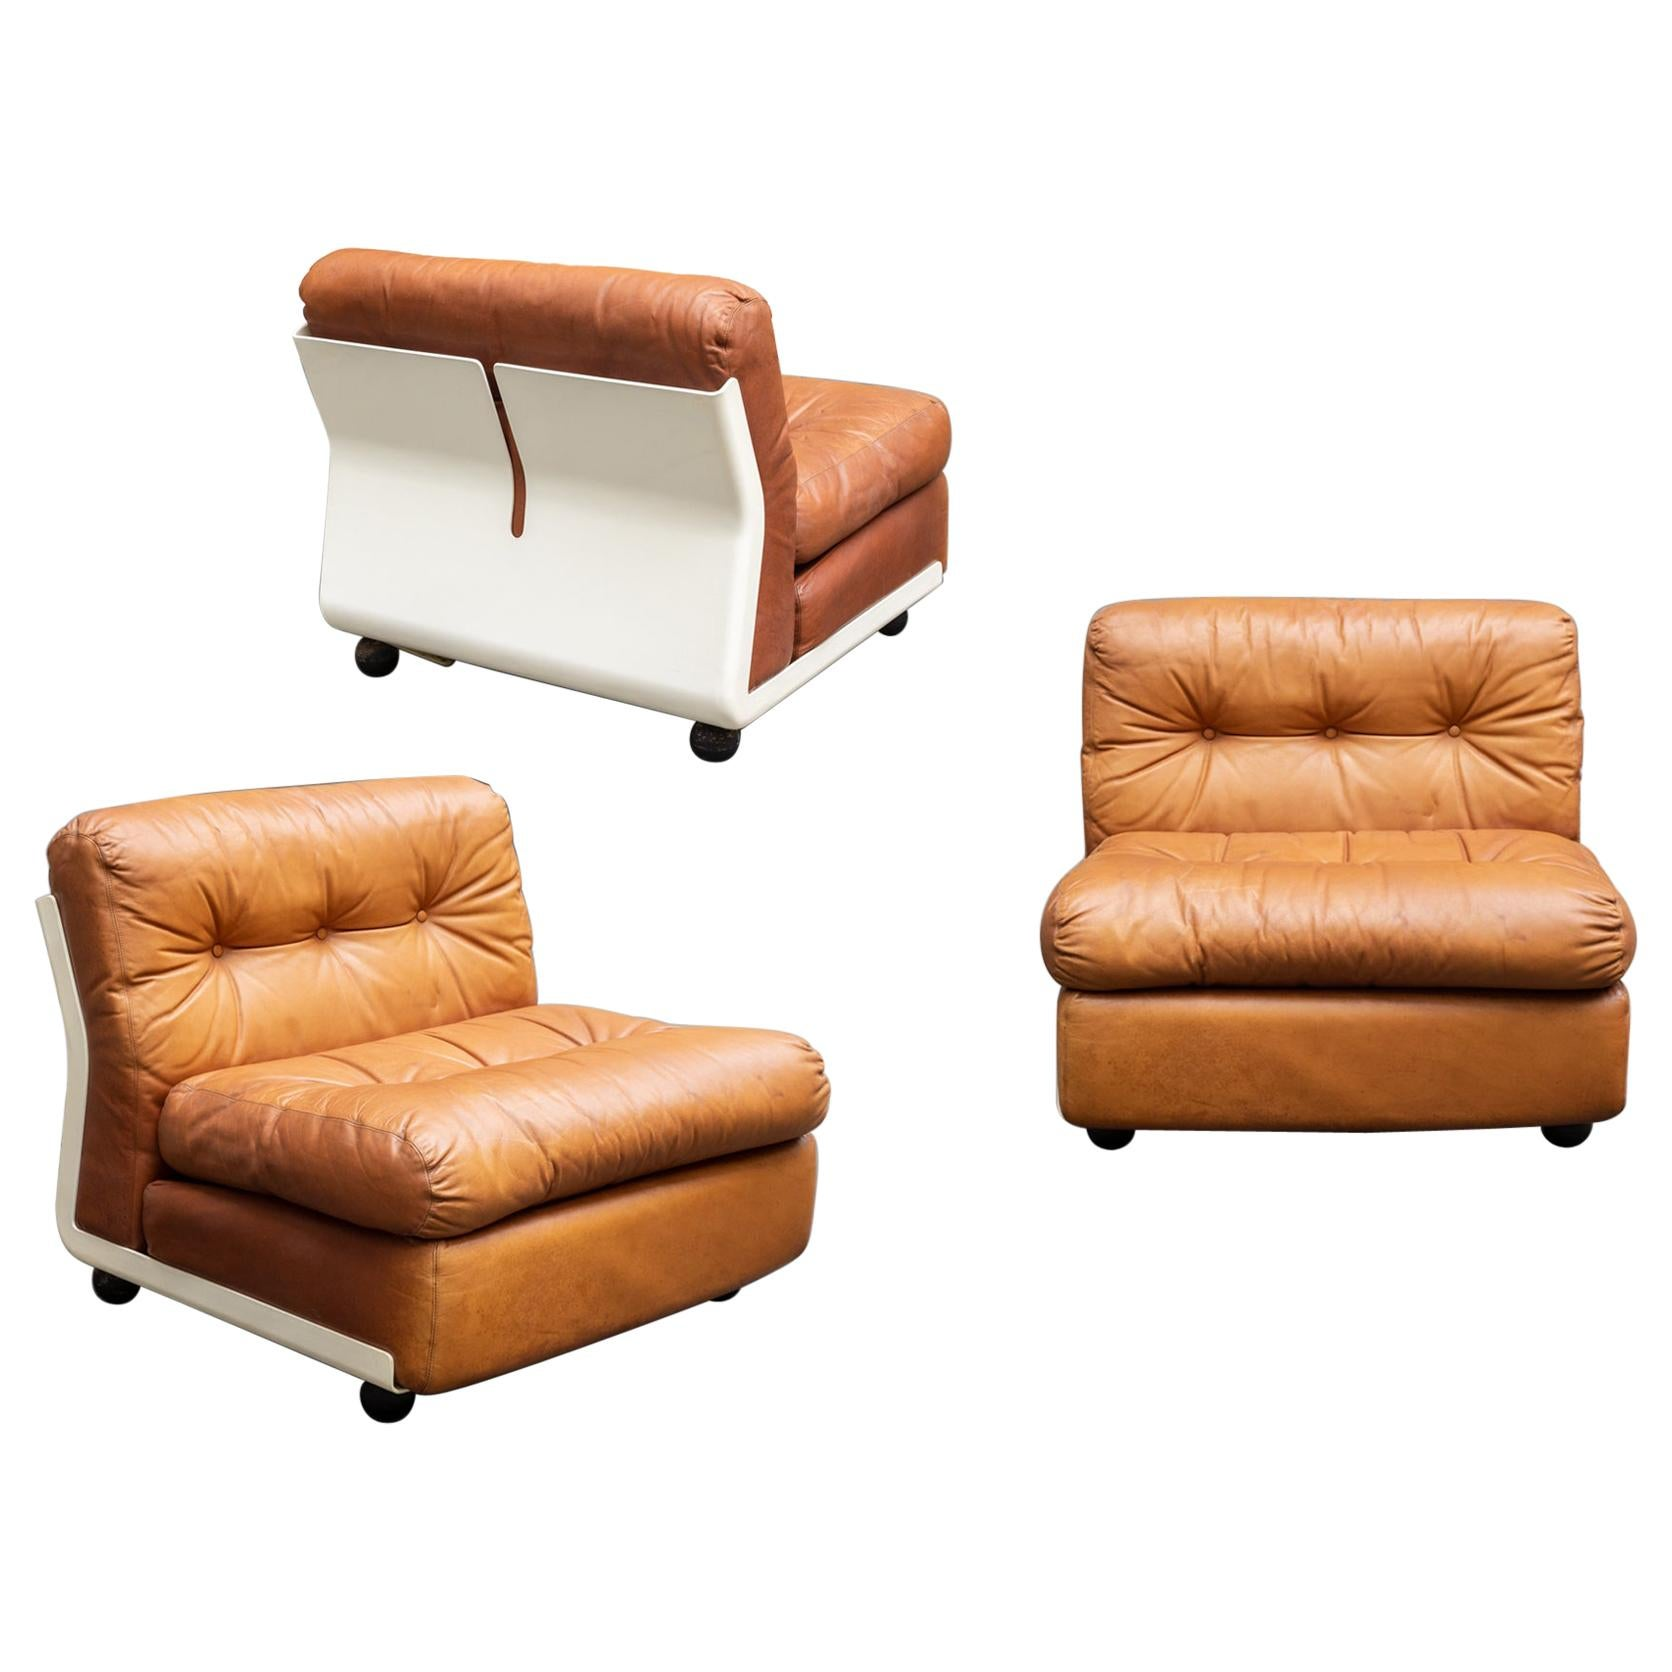 Amanta Leather Set of 3 Armchair by Mario Bellini from C&B Italia, 1960s